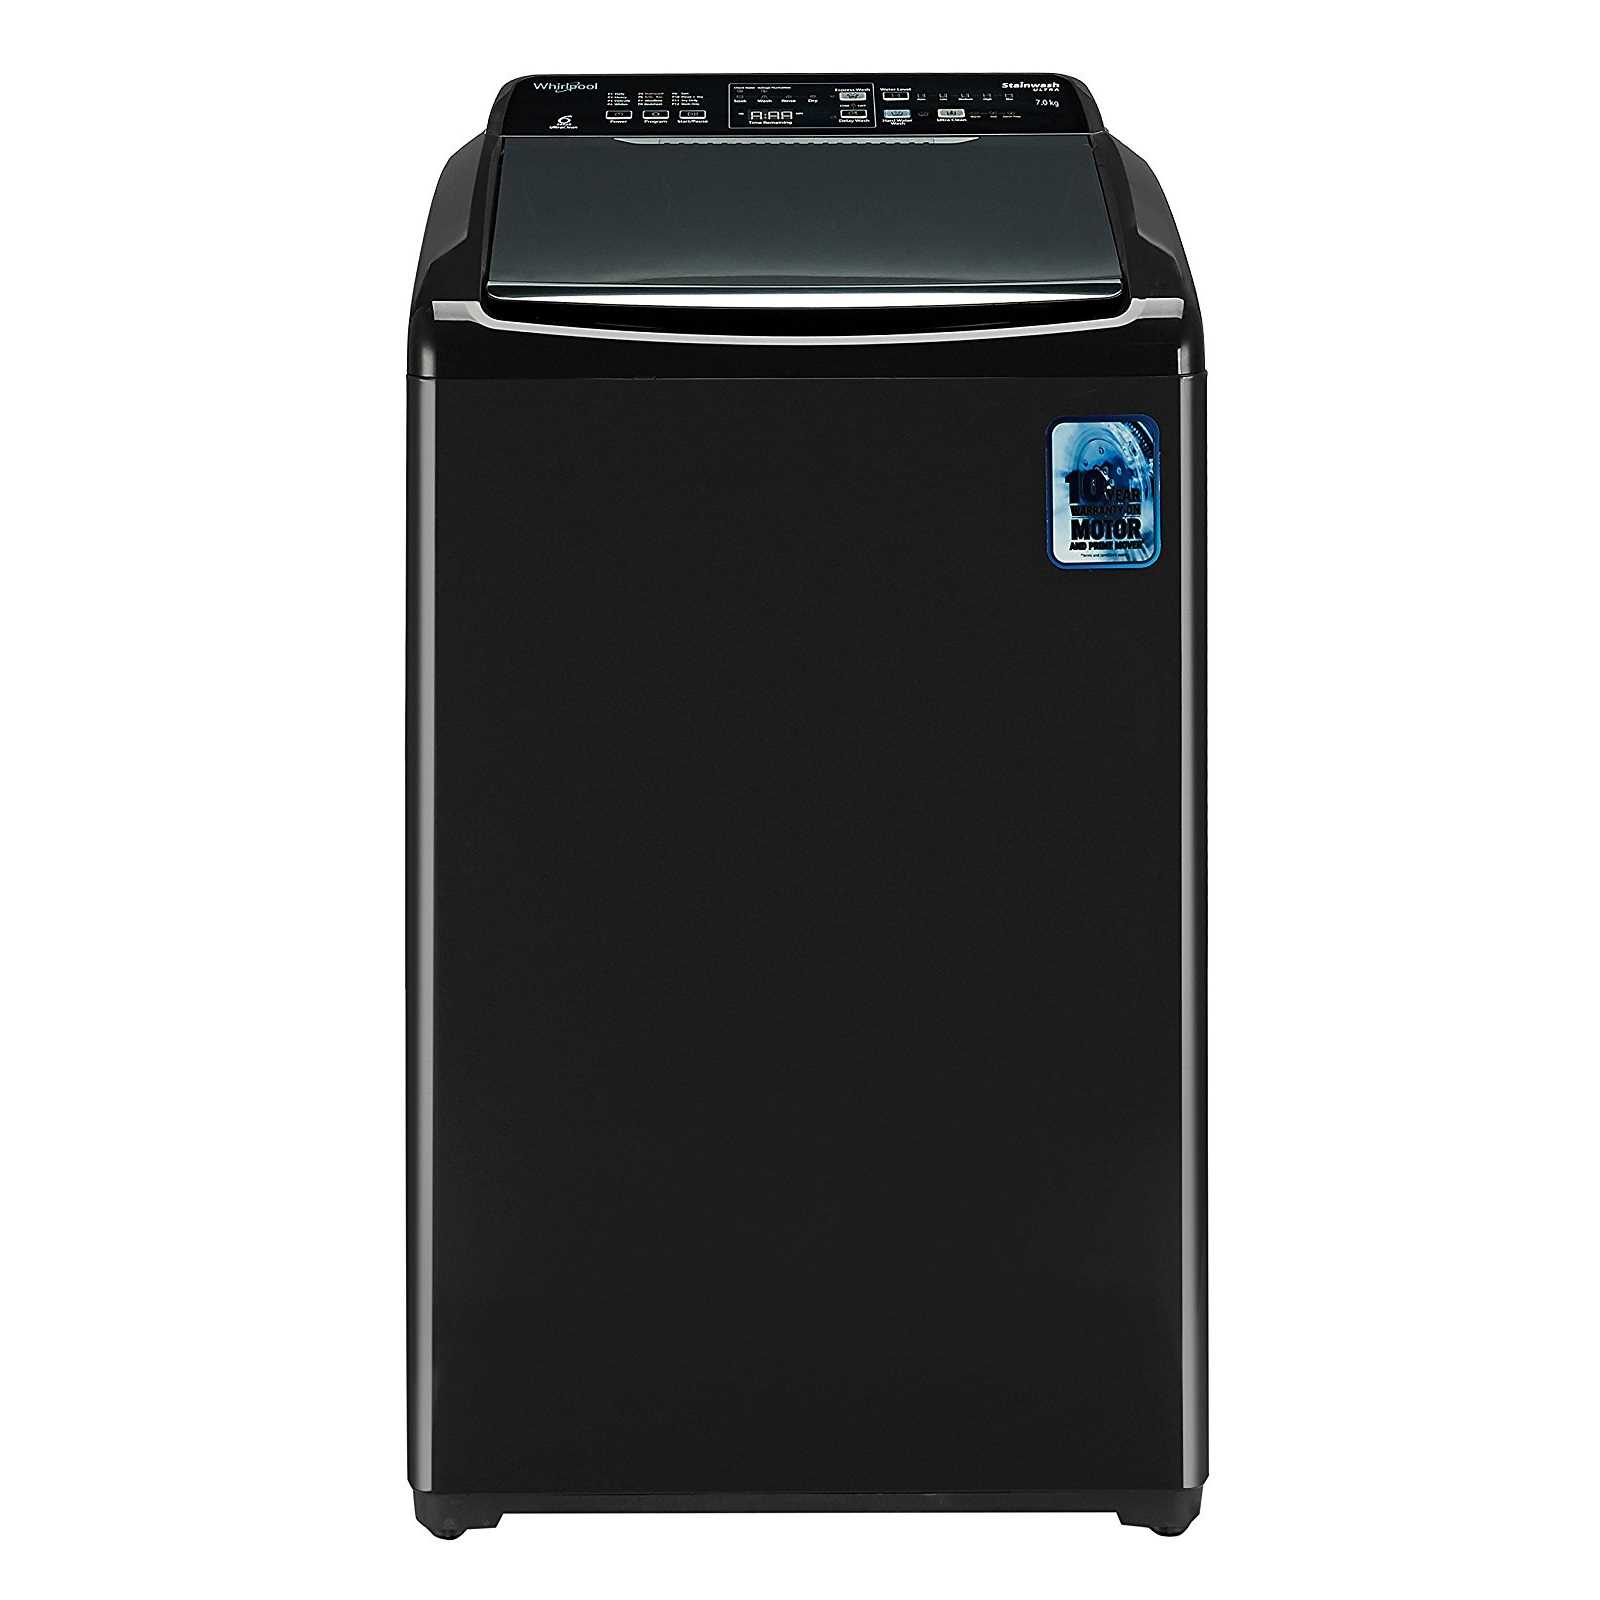 Whirlpool Stainwash Ultra 7 Kg Fully Automatic Top Loading Washing Machine